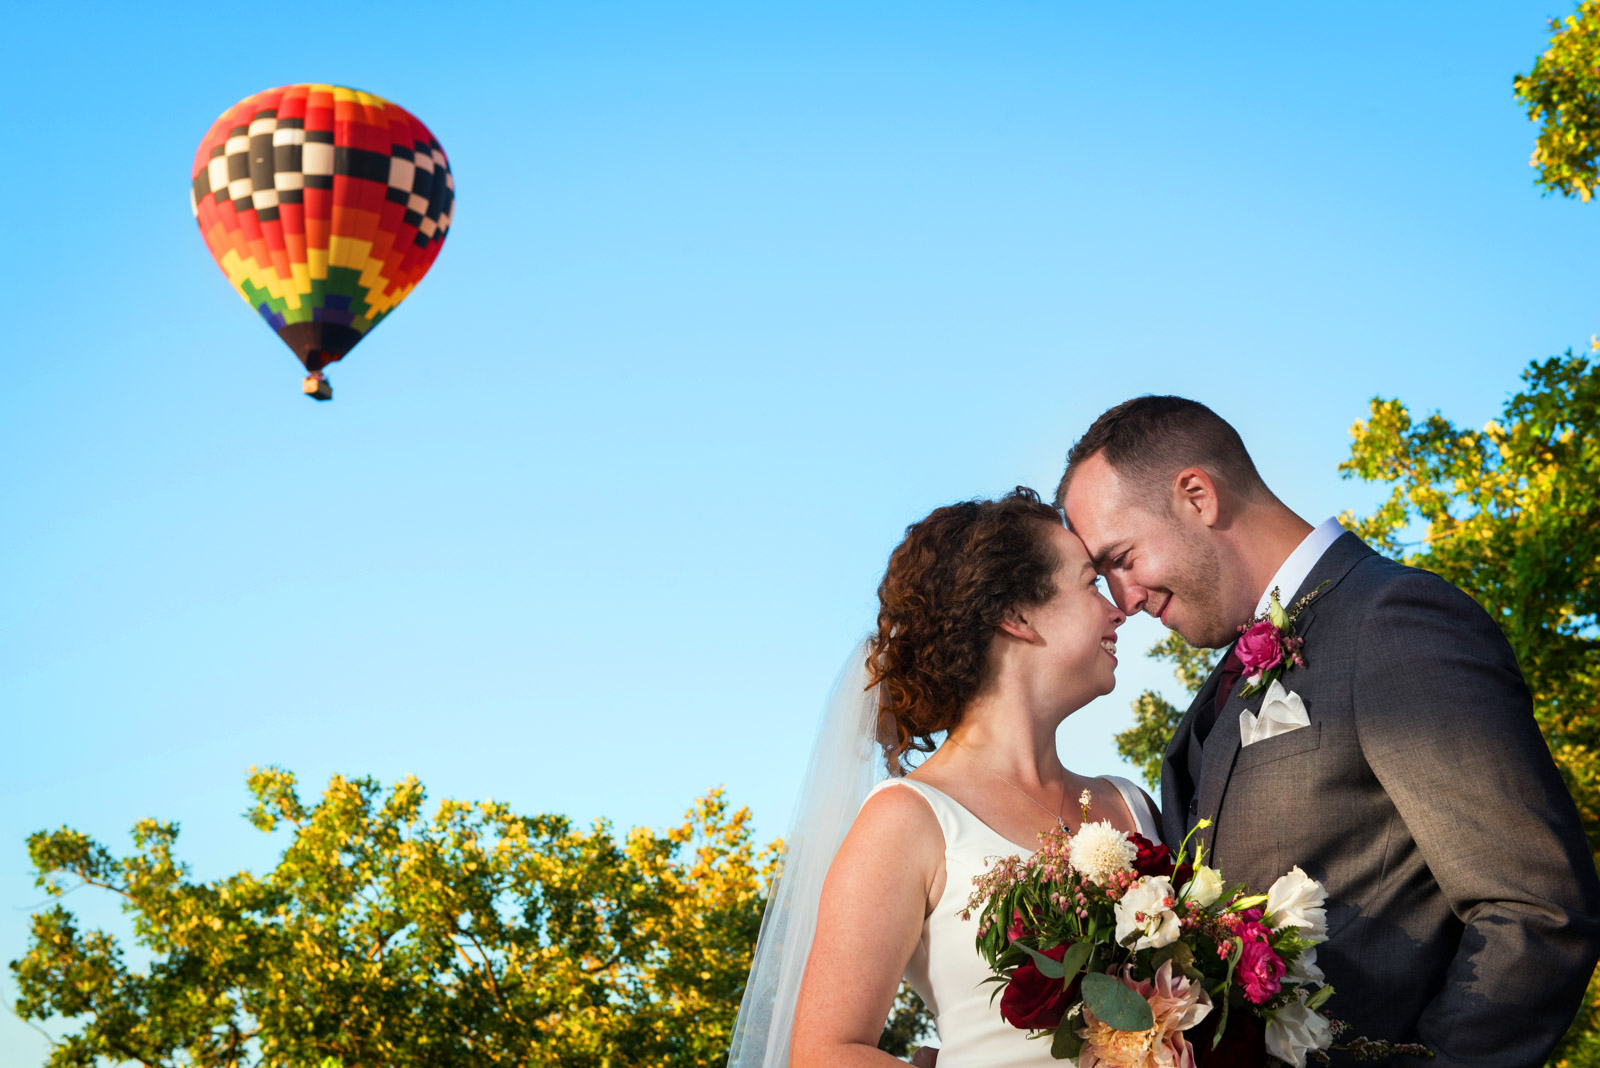 Bride Groom Hot Air Balloon